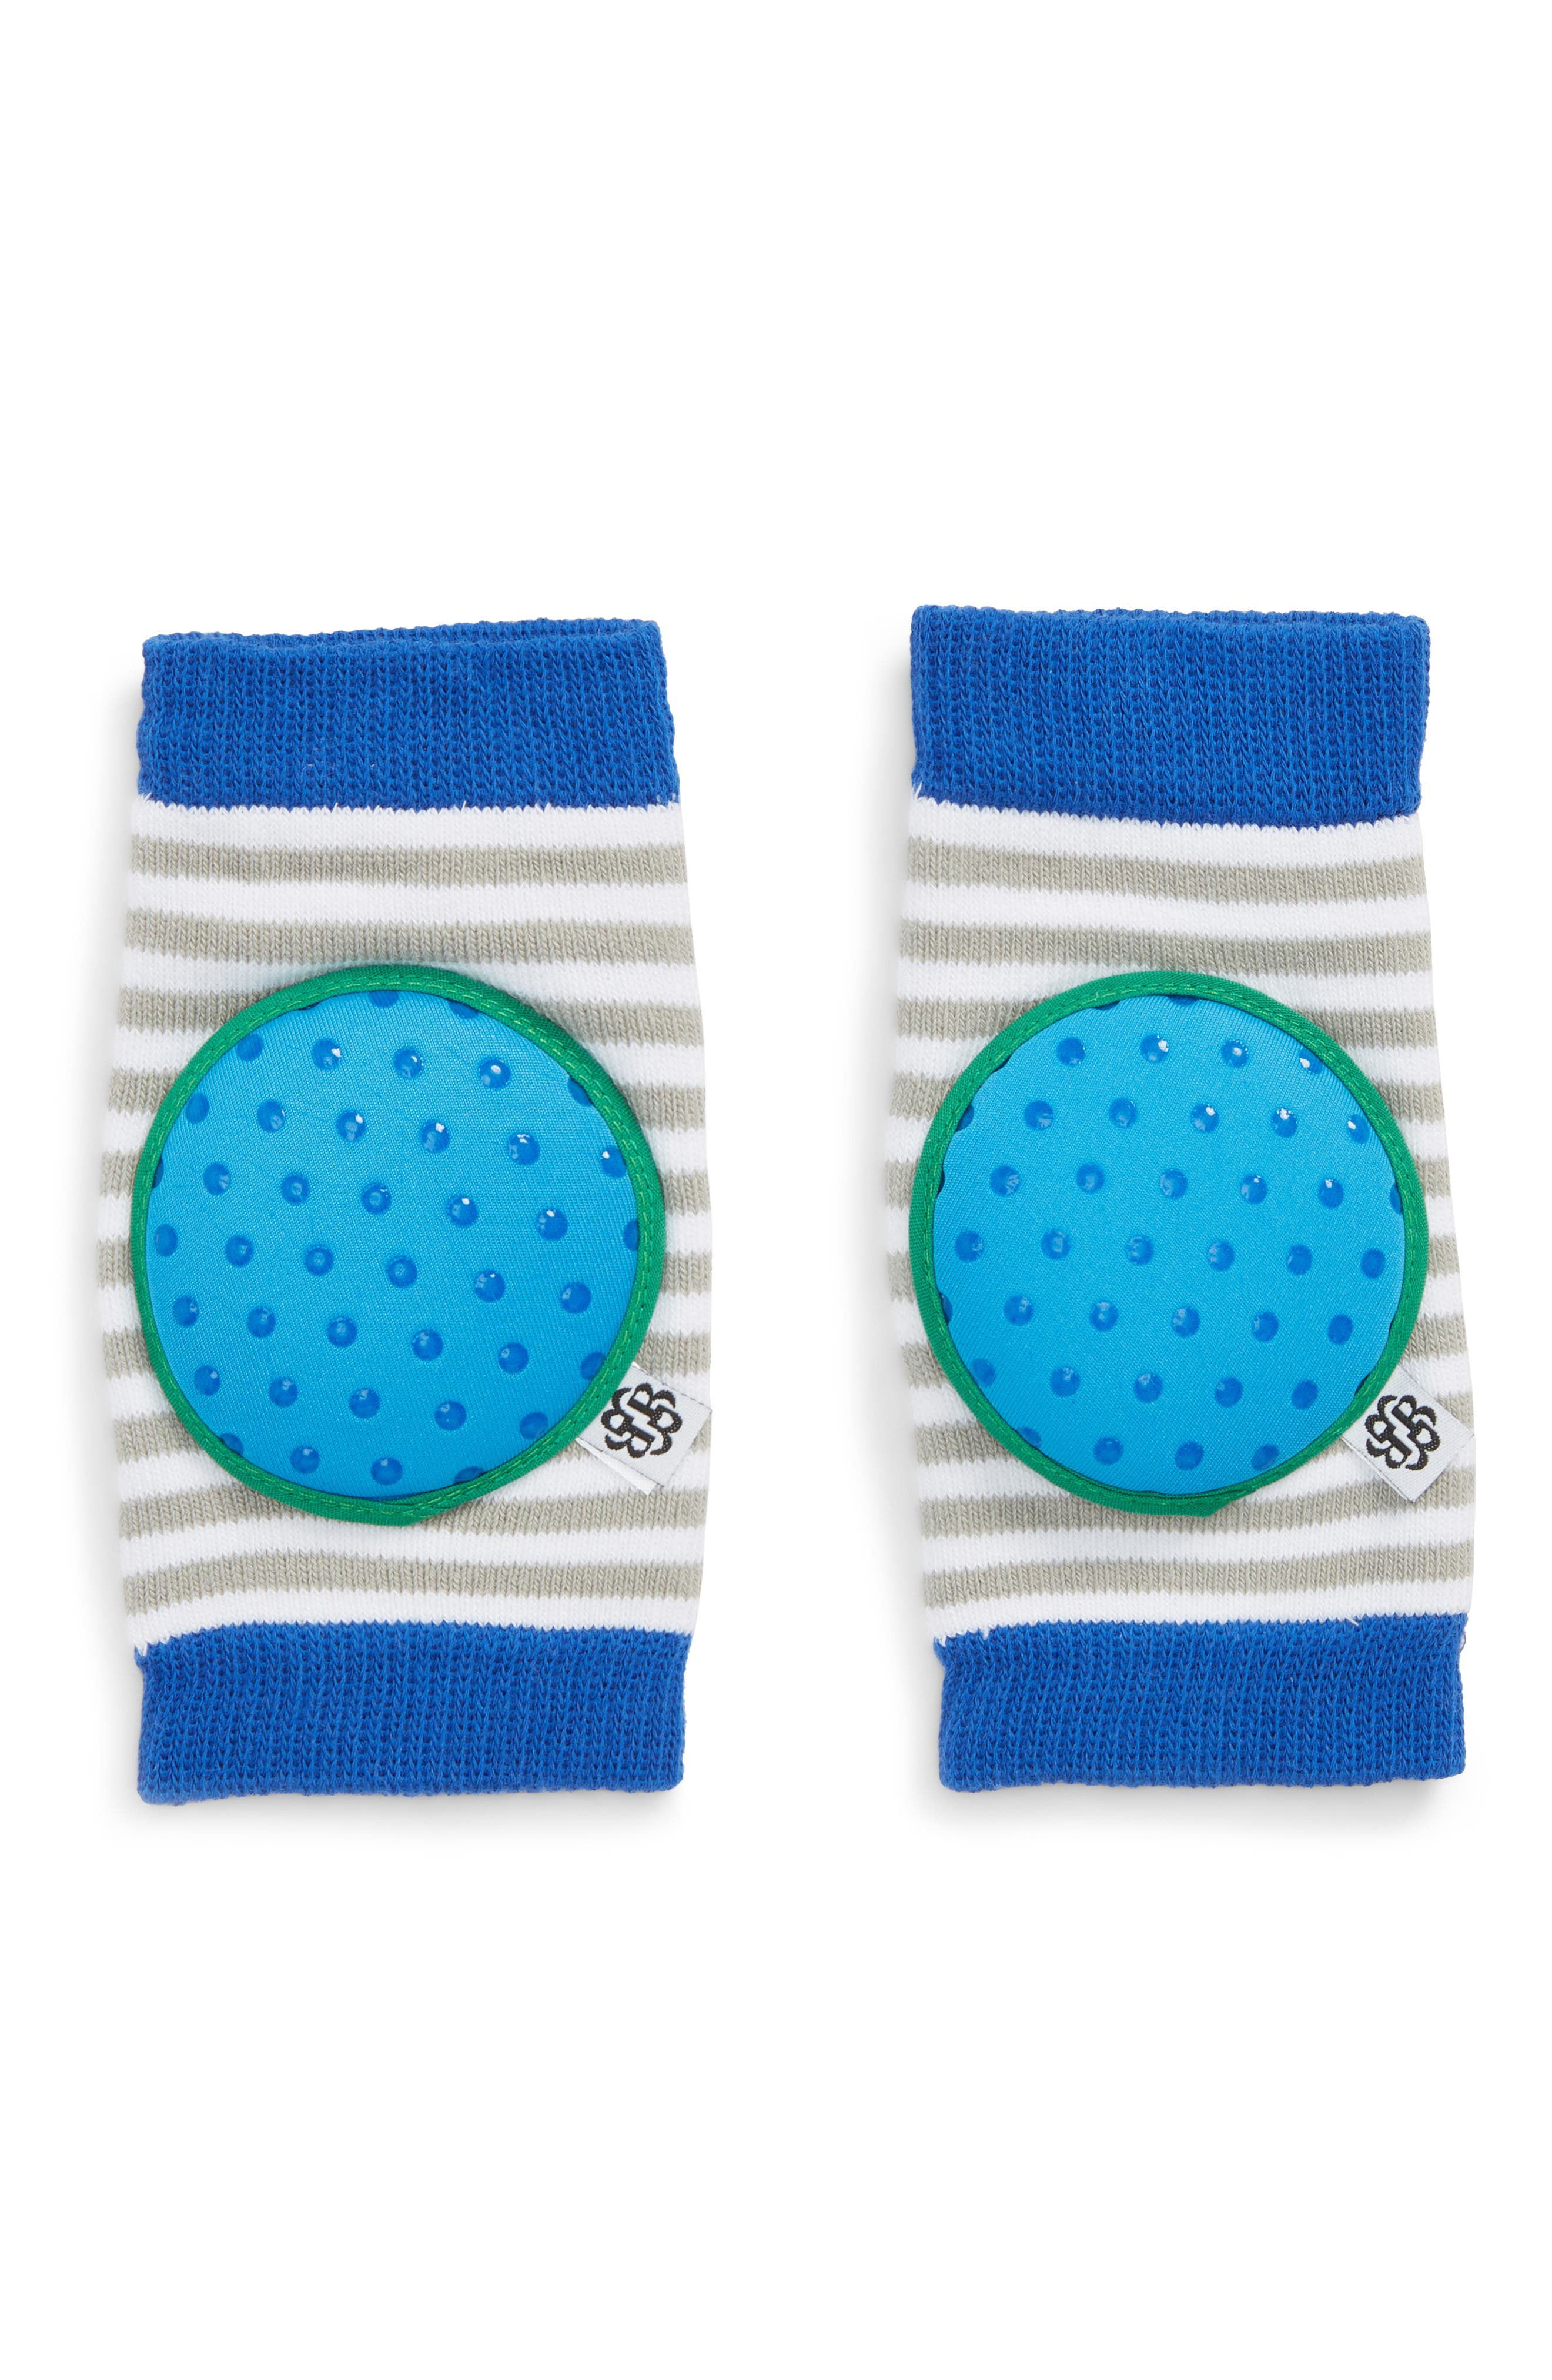 'Happy Knees' Protective Knee Pads,                             Main thumbnail 1, color,                             BINGO BLUE